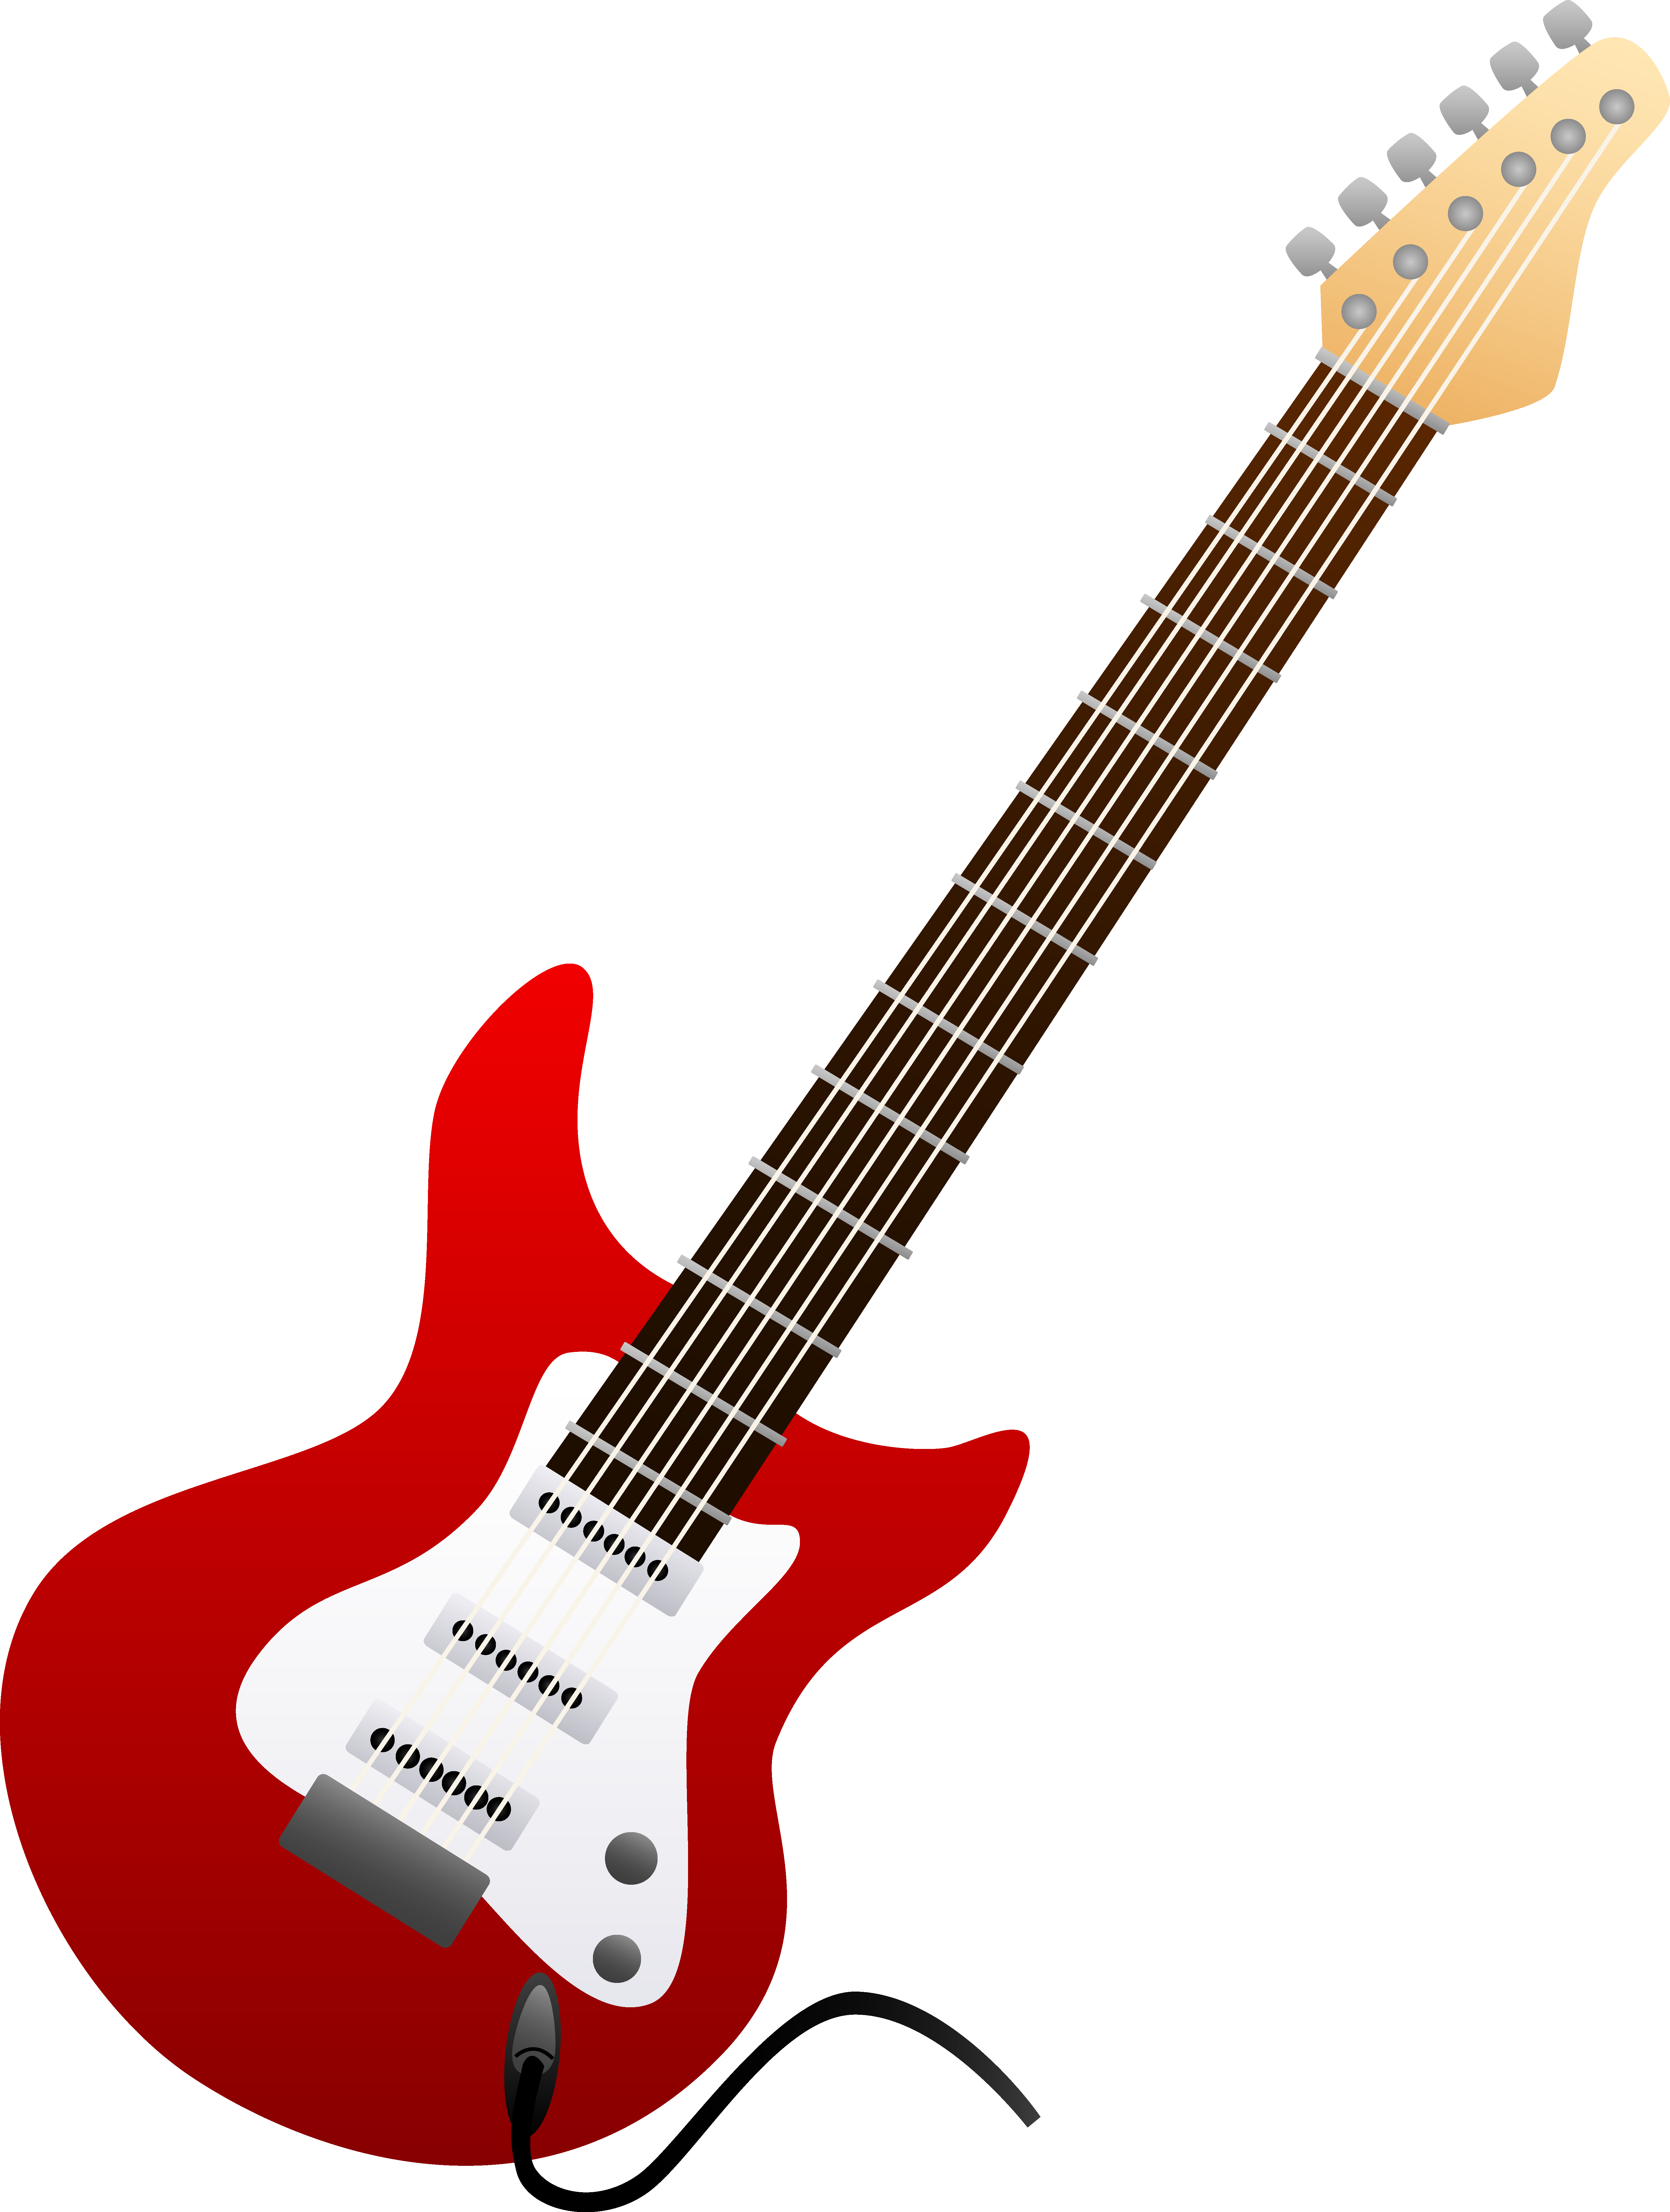 Free rock star clipart svg transparent library Rock Star Guitar Clip Art   Clipart Panda - Free Clipart Images svg transparent library